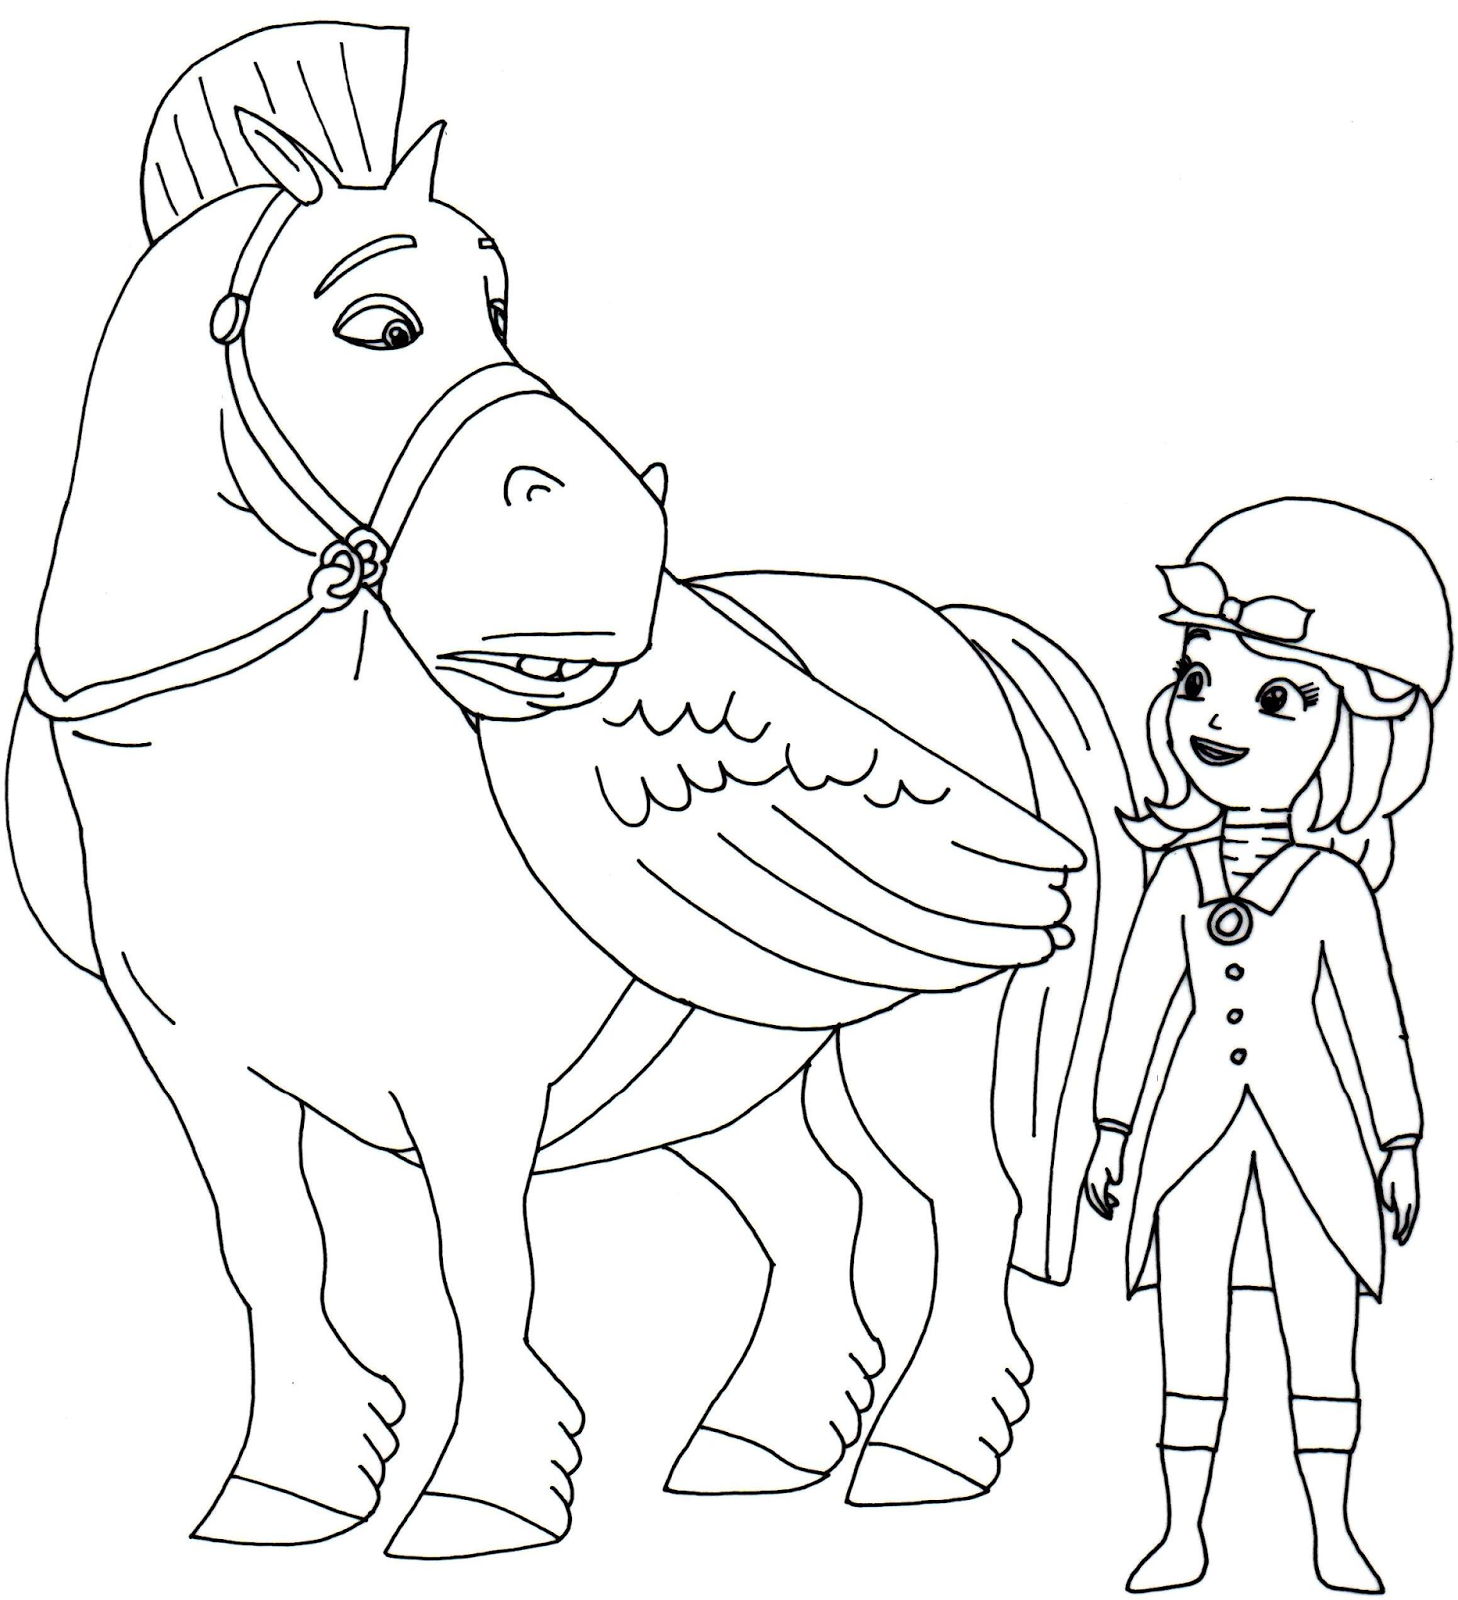 sofia the first coloring pages sofia the first pinterest